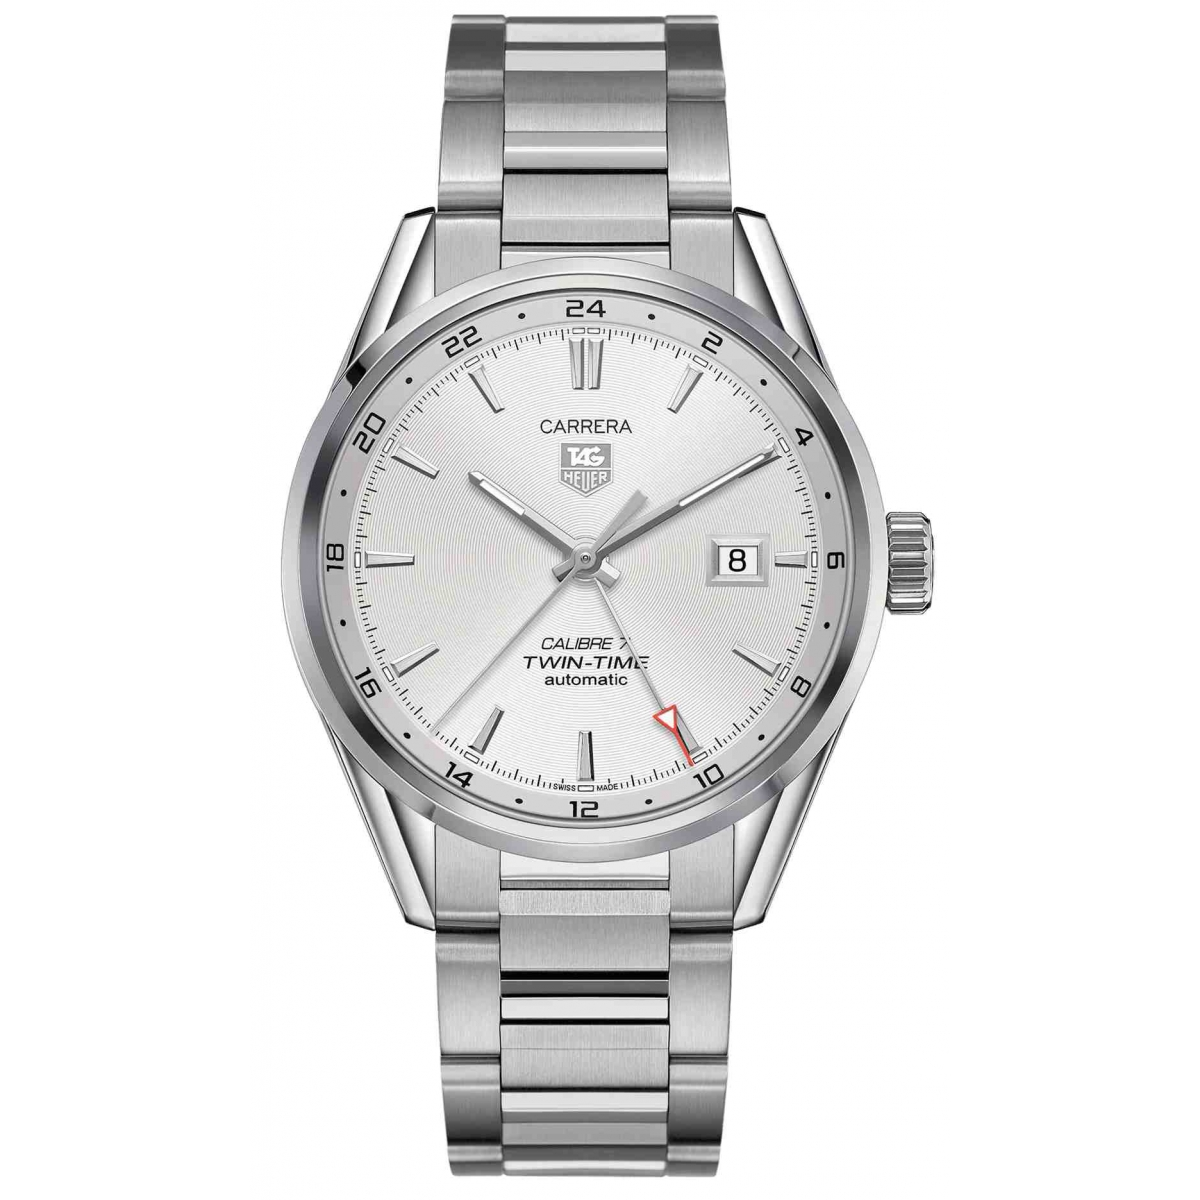 Carrera Calibre 7 Twin Time automático 100 M - ∅41 mm esfera plateada acero